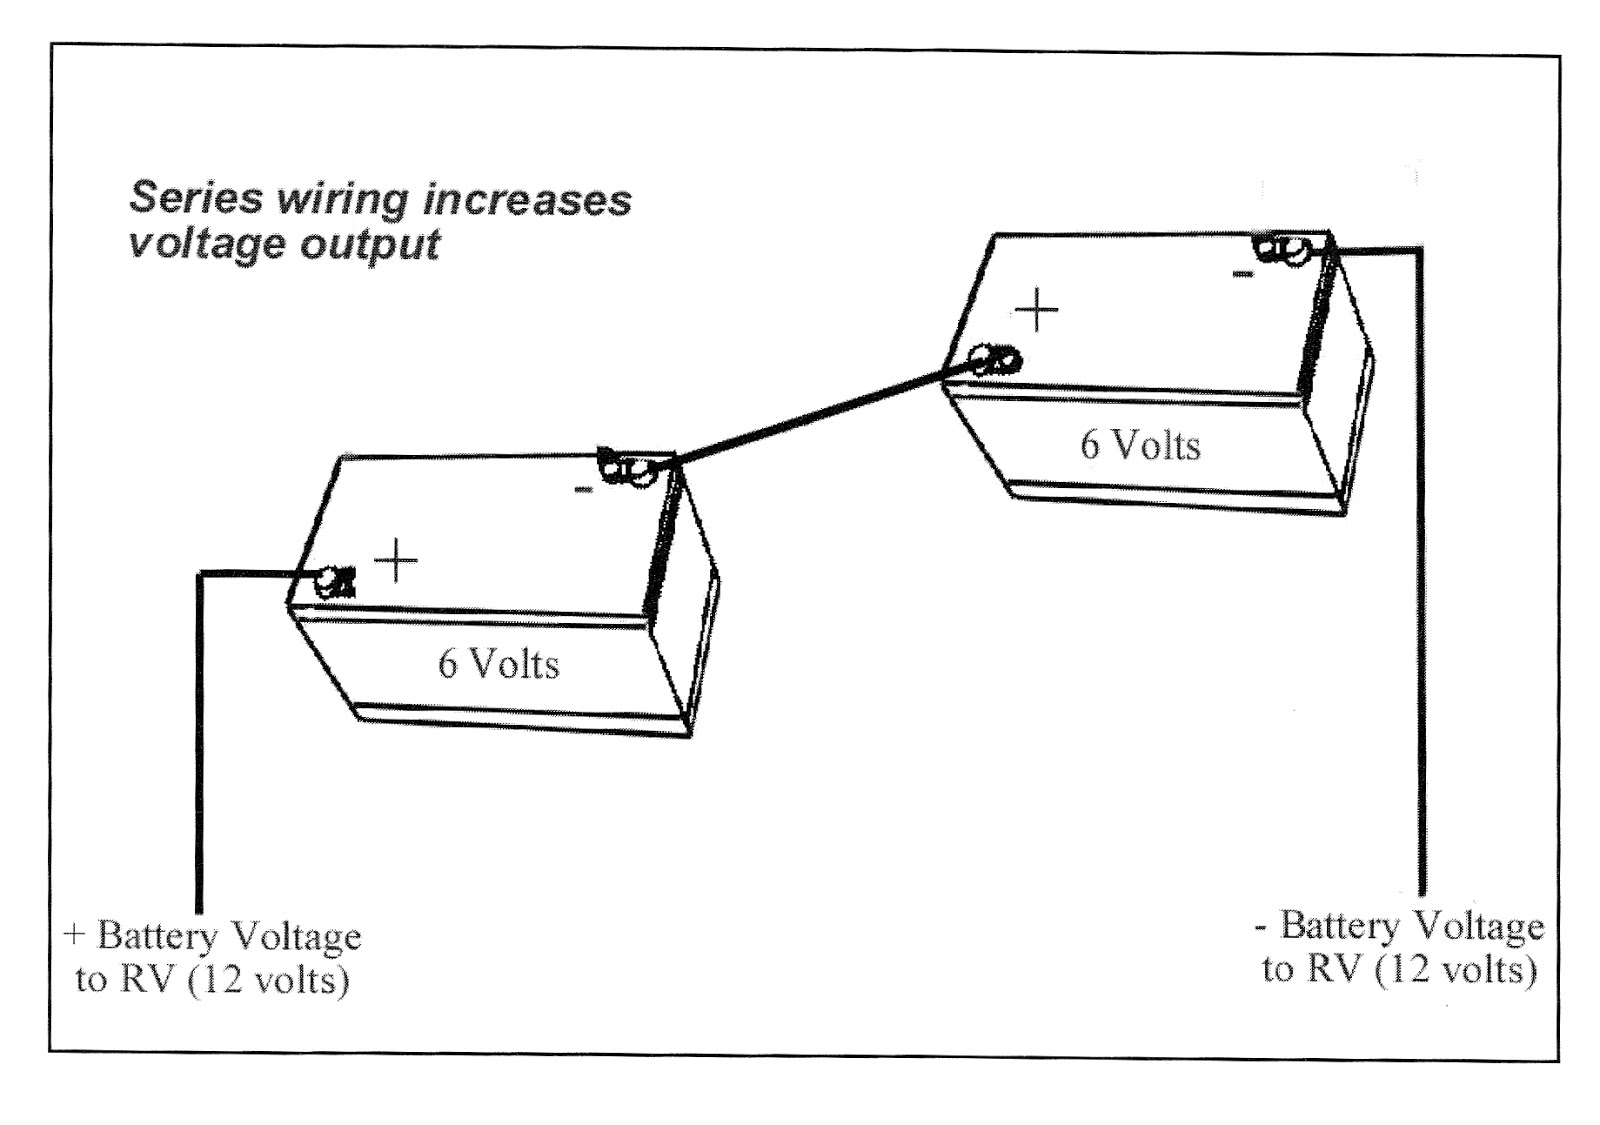 battery+series+wiring+diagram penny's tuppence (2 cents in brit) november 2012 Light Switch Wiring Diagram at nearapp.co